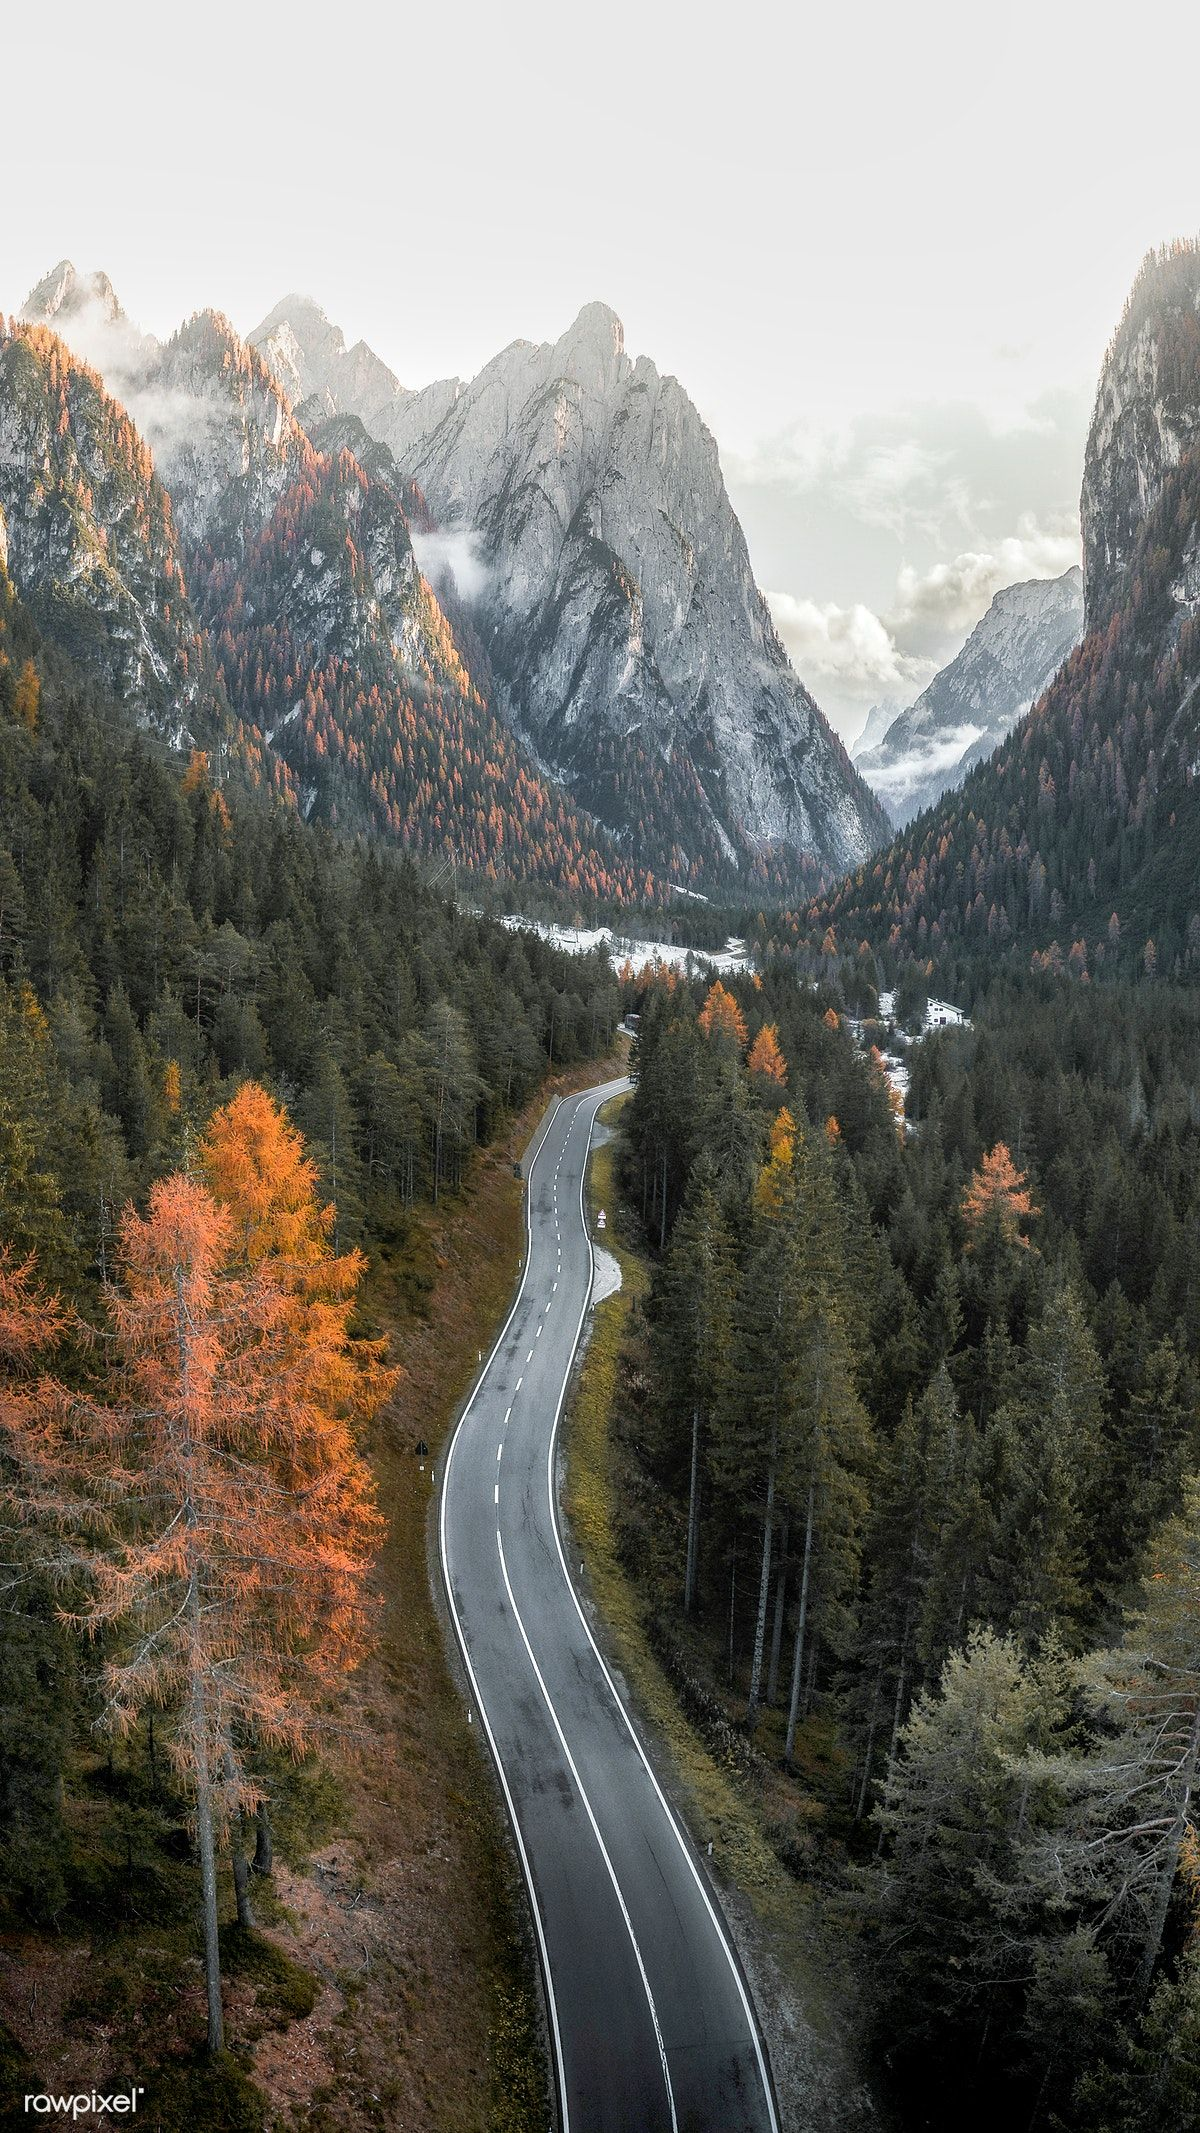 Download premium image of Drone shot of the road in Dolomites, Italy mobile phone wallpaper by Luke Stackpoole about road fall, wallpaper nature, iPhone wallpaper autumn, iphone wallpaper fall, and Wallpaper iphone hd wallpaper background 2092634